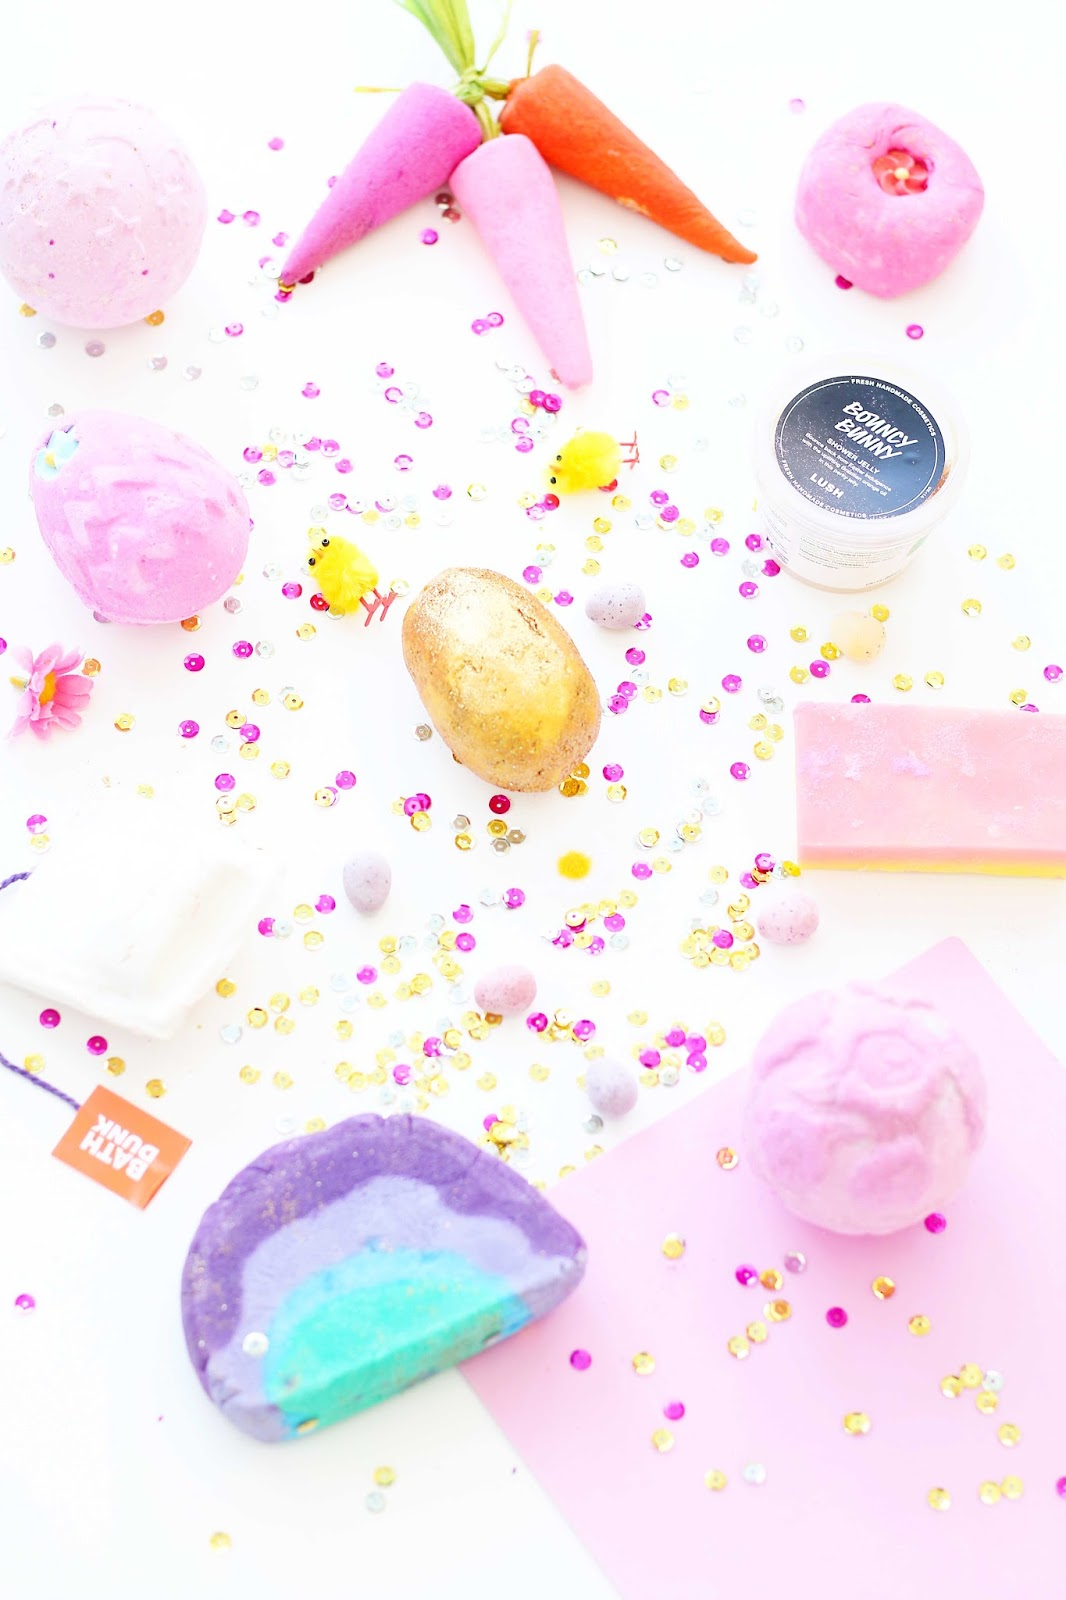 Beauty, Lush Haul, Lush Easter Haul, Lush Easter 2016 collection, Lush Bath, Easter, bunch of carrots, twilight bath bomb, somewhere over the rainbow, fluffy egg, golden egg,